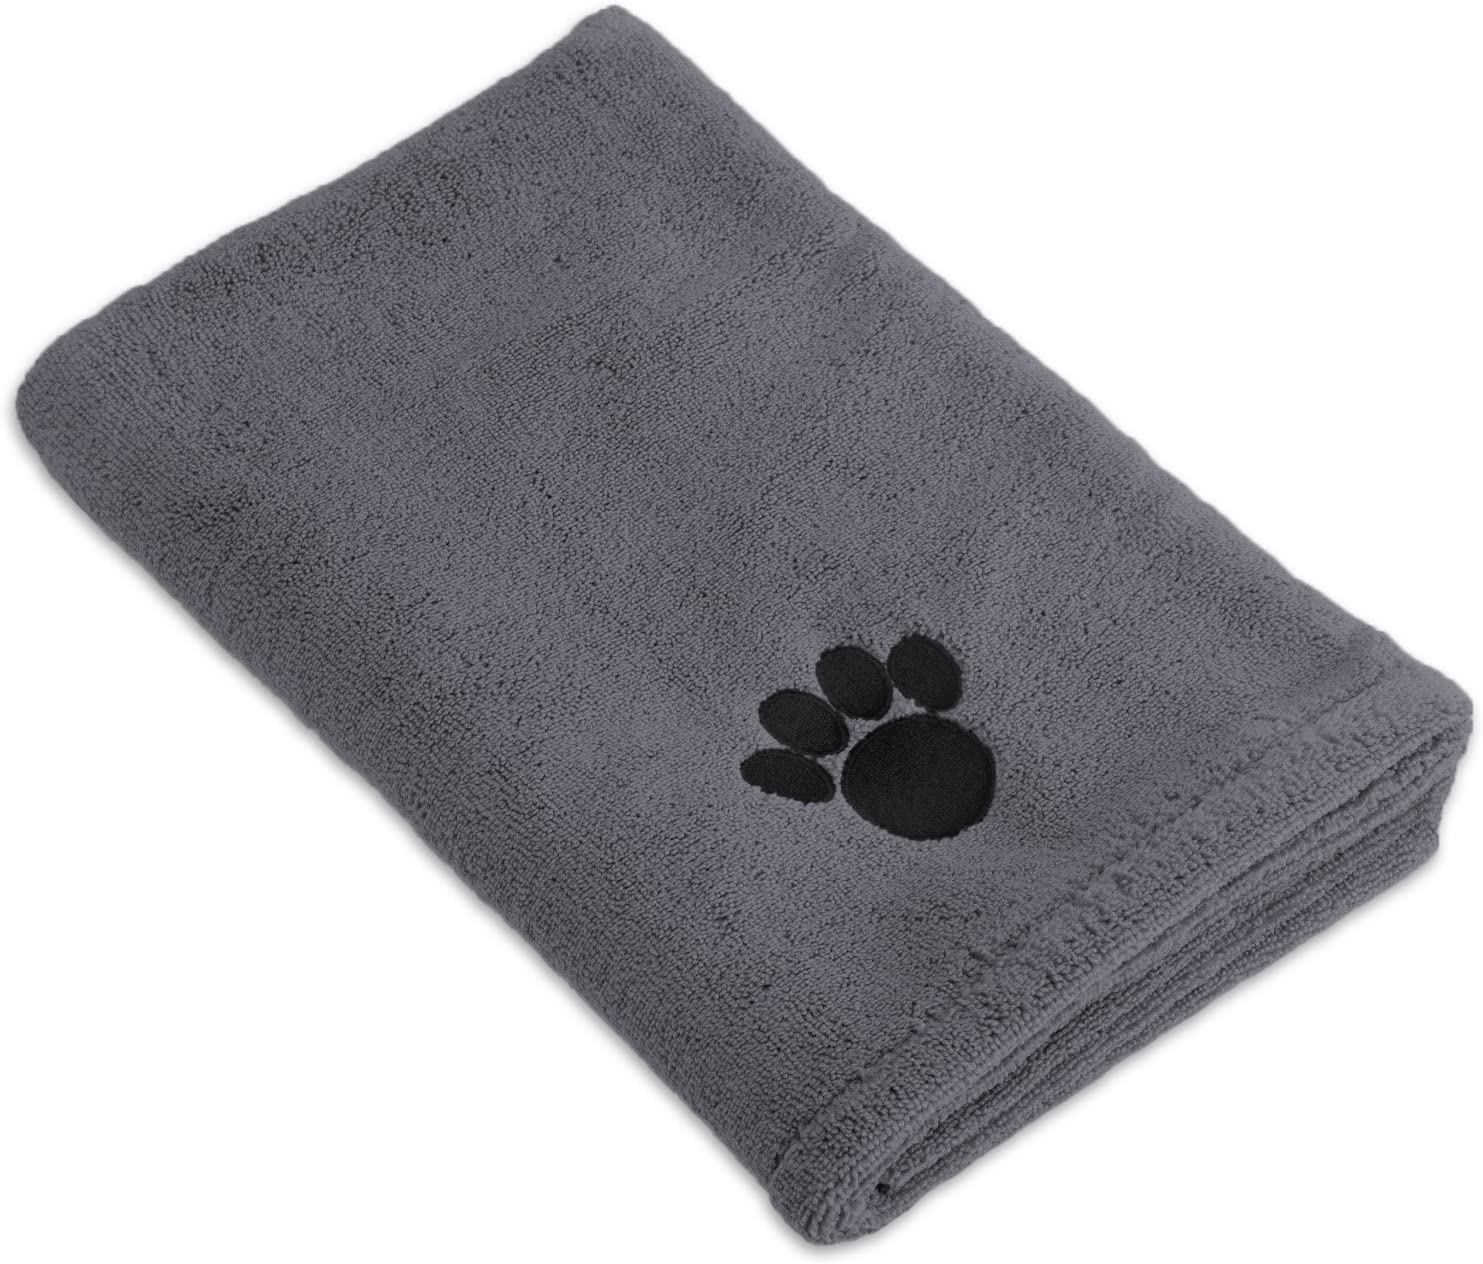 "Bone Dry Embroidered Pet Towel, 44 x 27.5"", Gray : Pet Supplies"